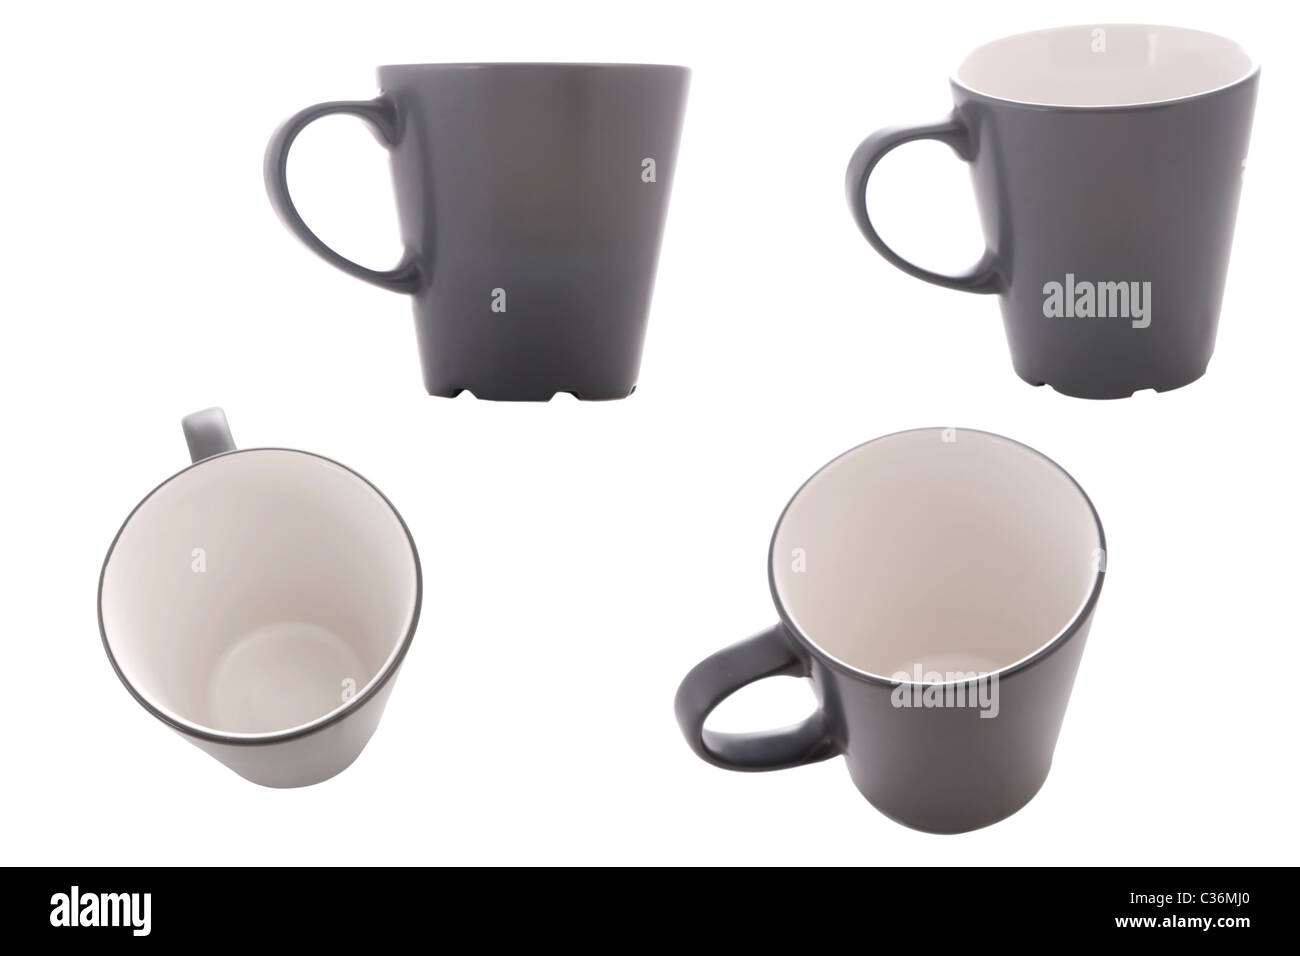 different point of view from cup on white background - Stock Image